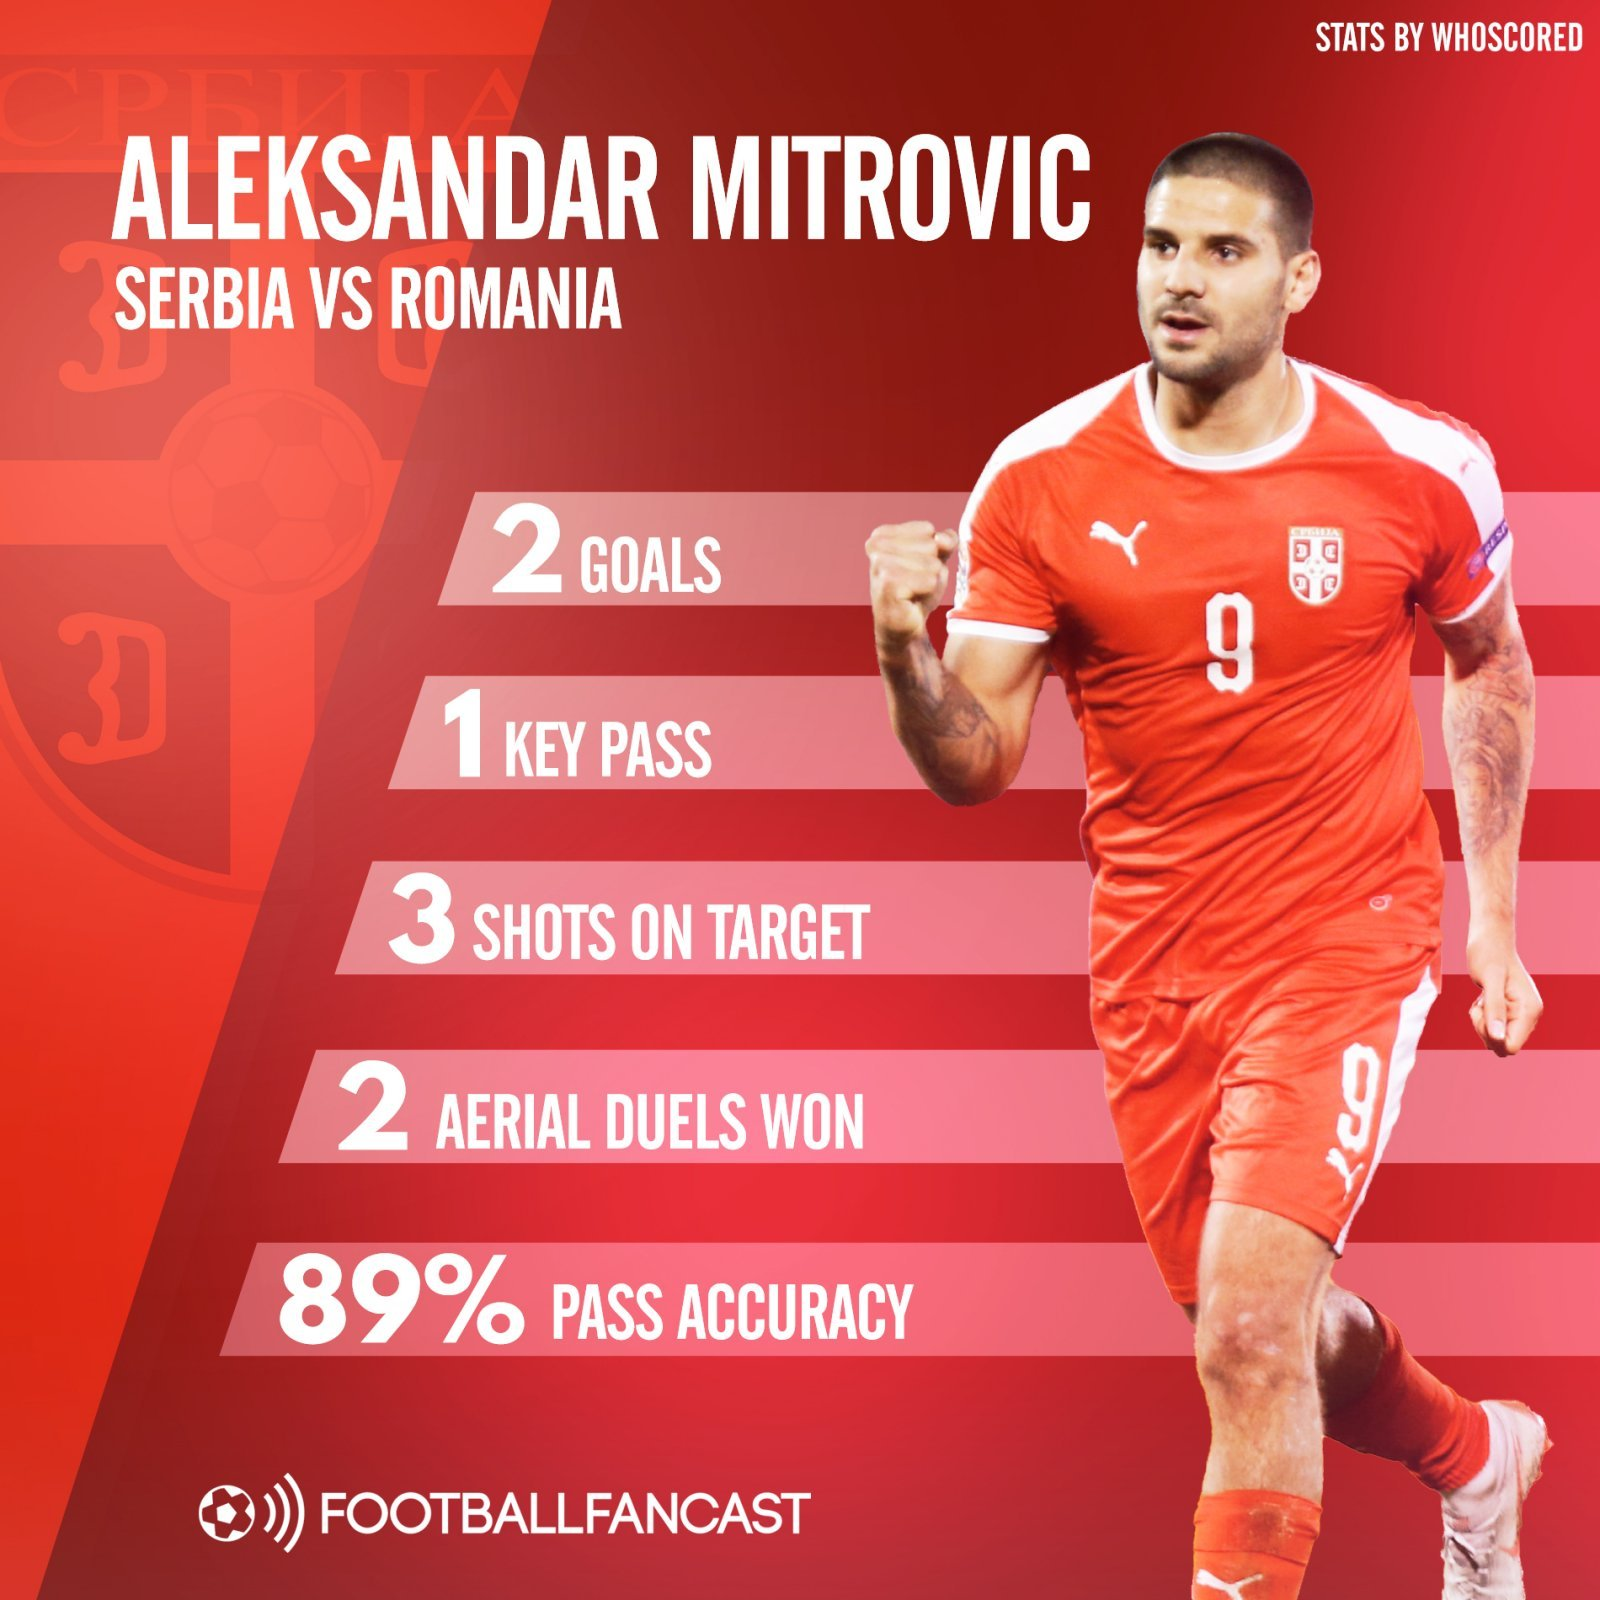 Fulham striker Aleksandar Mitrovic's impressive stats in Serbia's draw with Romania